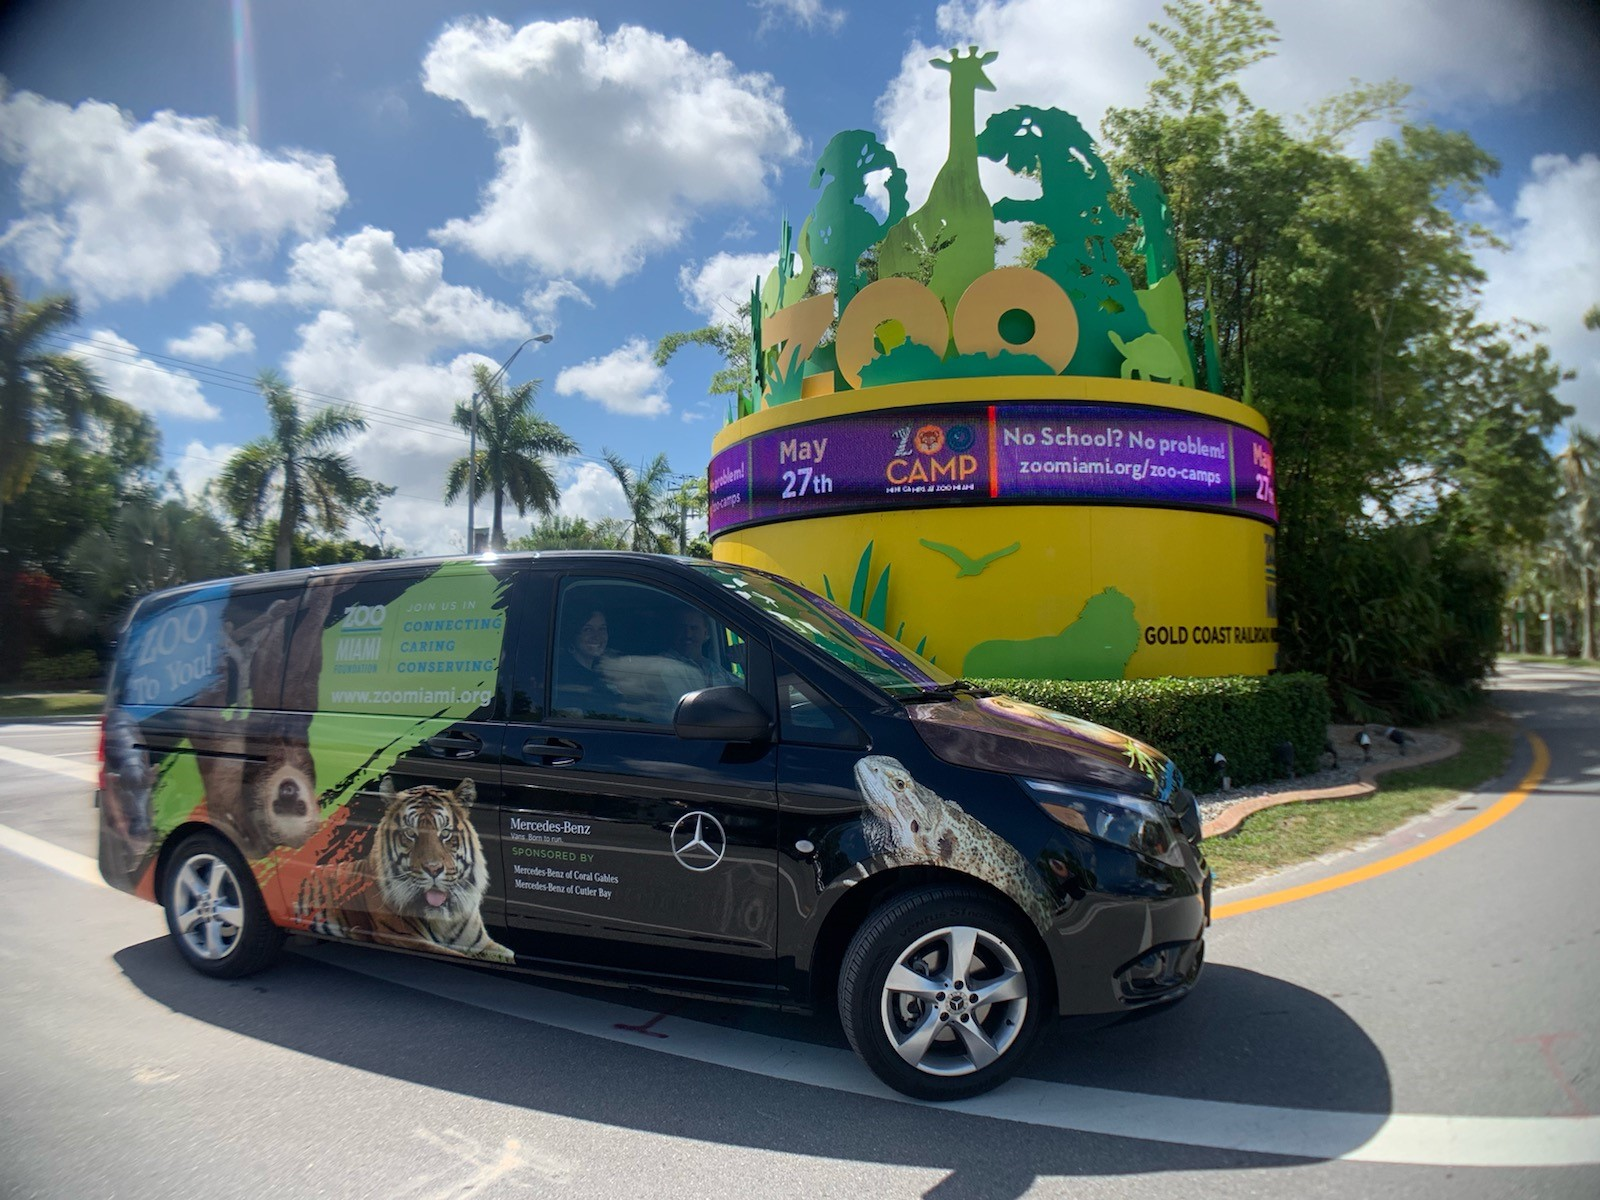 Mercedes-Benz of Cutler Bay and Mercedes-Benz of Coral Gables Grant Zoo Miami Foundation $30,000 for Educational Outreach Van